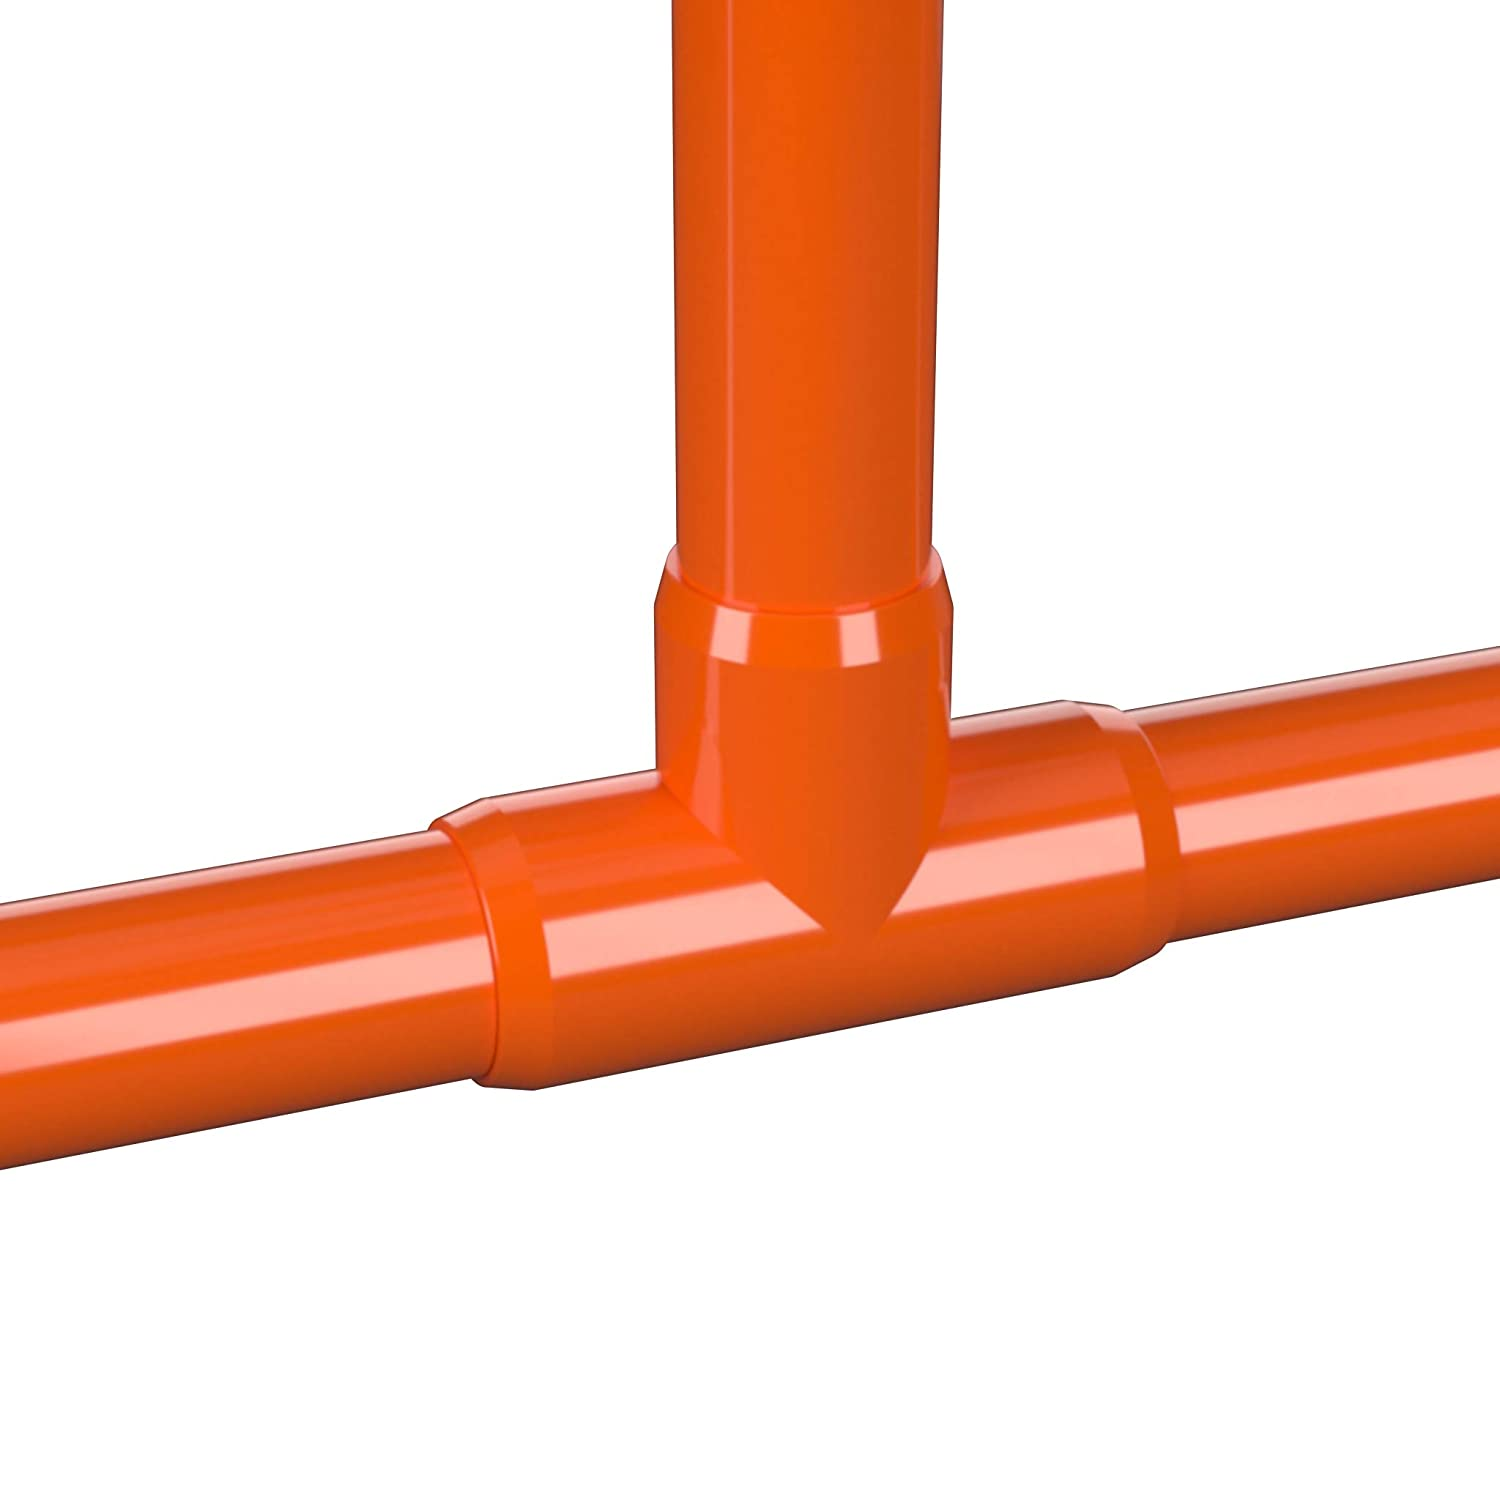 FORMUFIT F114TEE-OR-4 Tee PVC Fitting Furniture Grade Pack of 4 Orange 1-1//4 Size